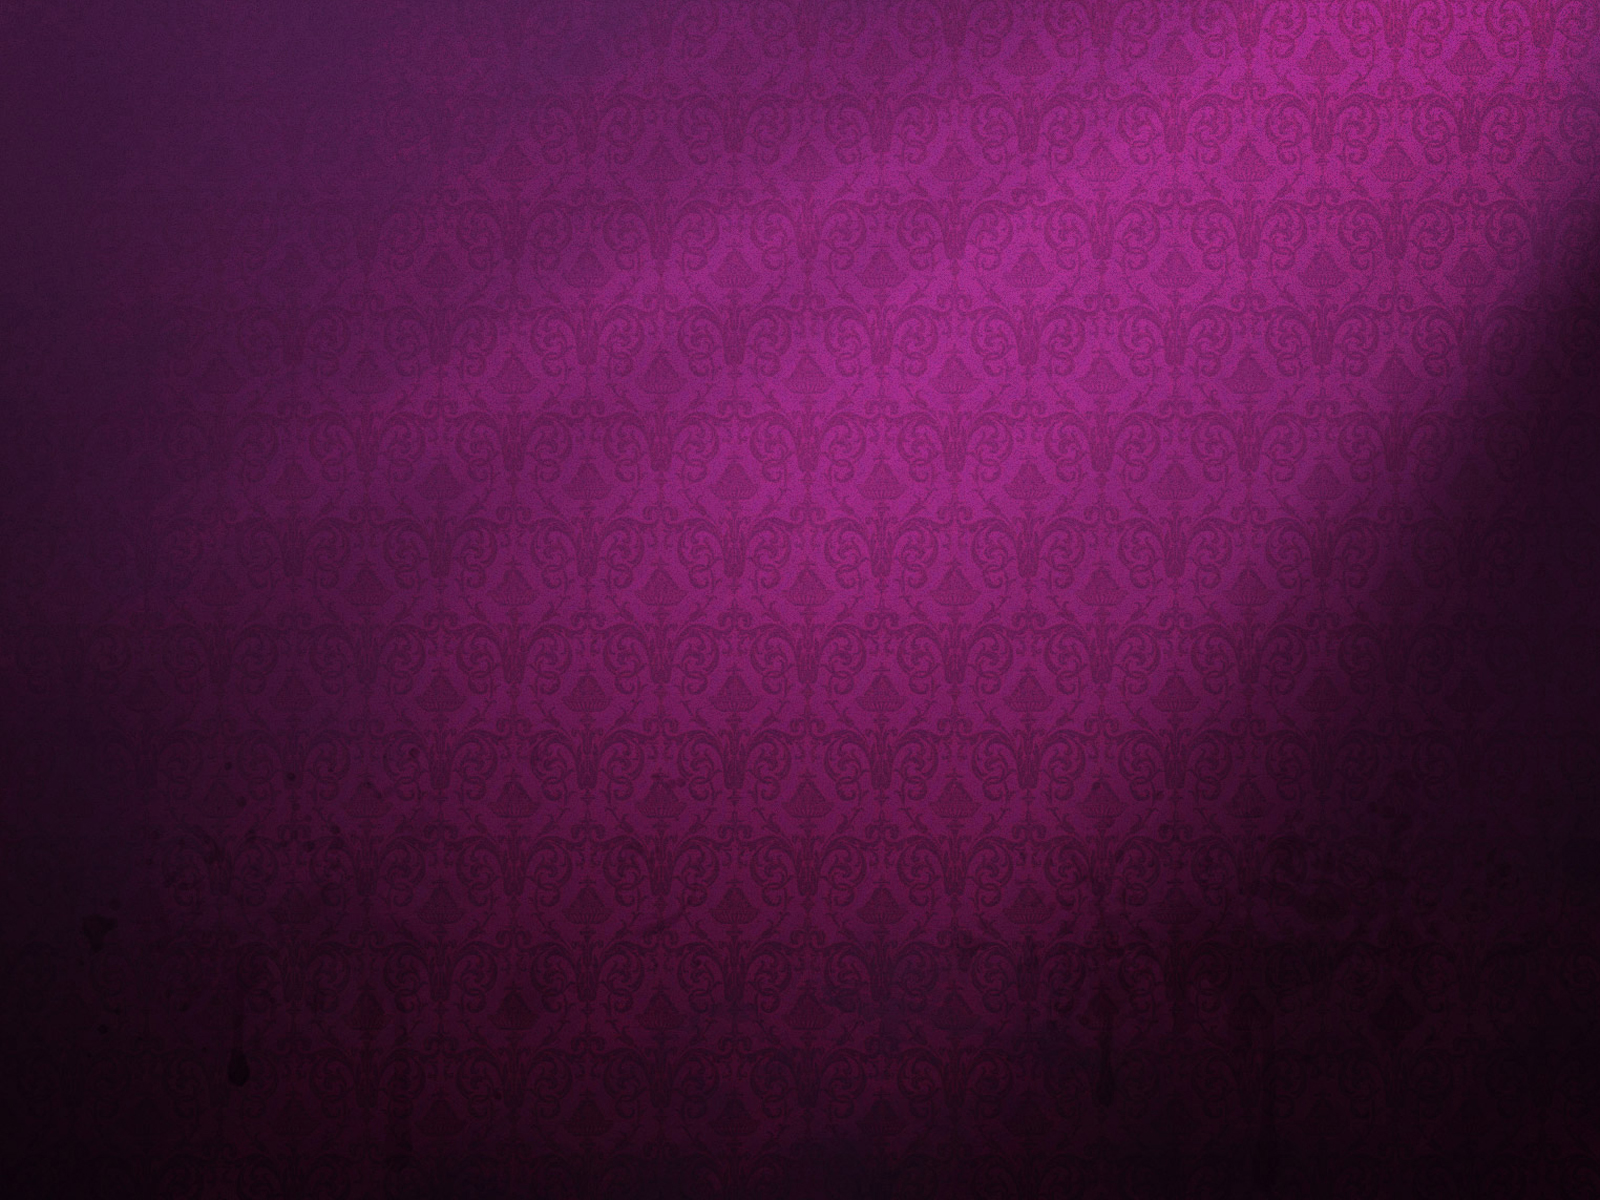 vintage purple pattern backgrounds abstract black